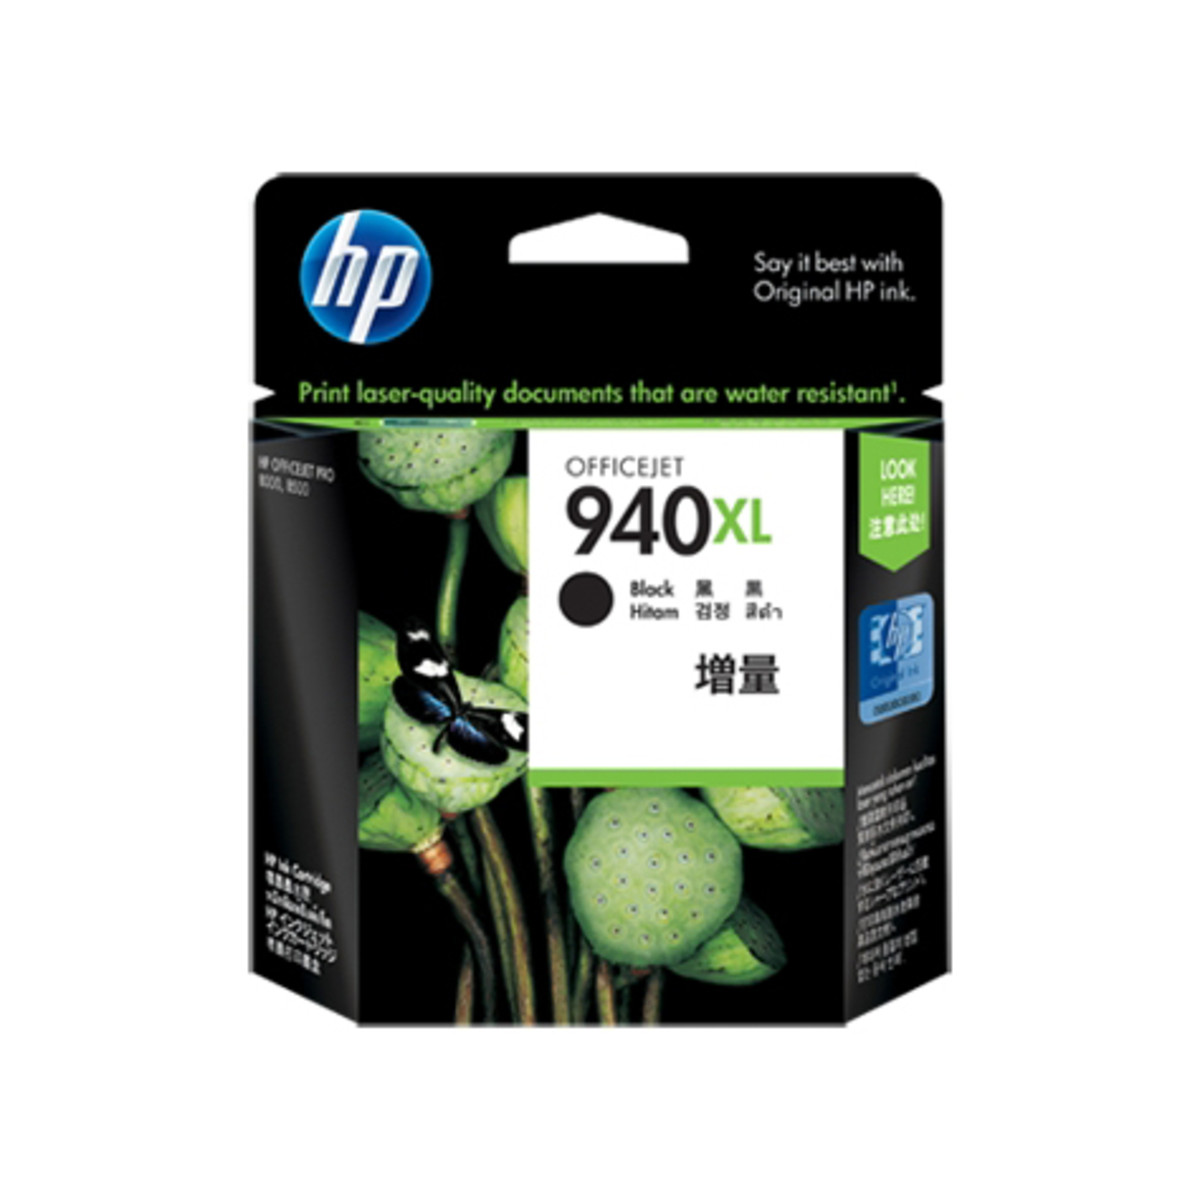 HP 940XL (C4906AA) Black Ink Cartridge - High Yield